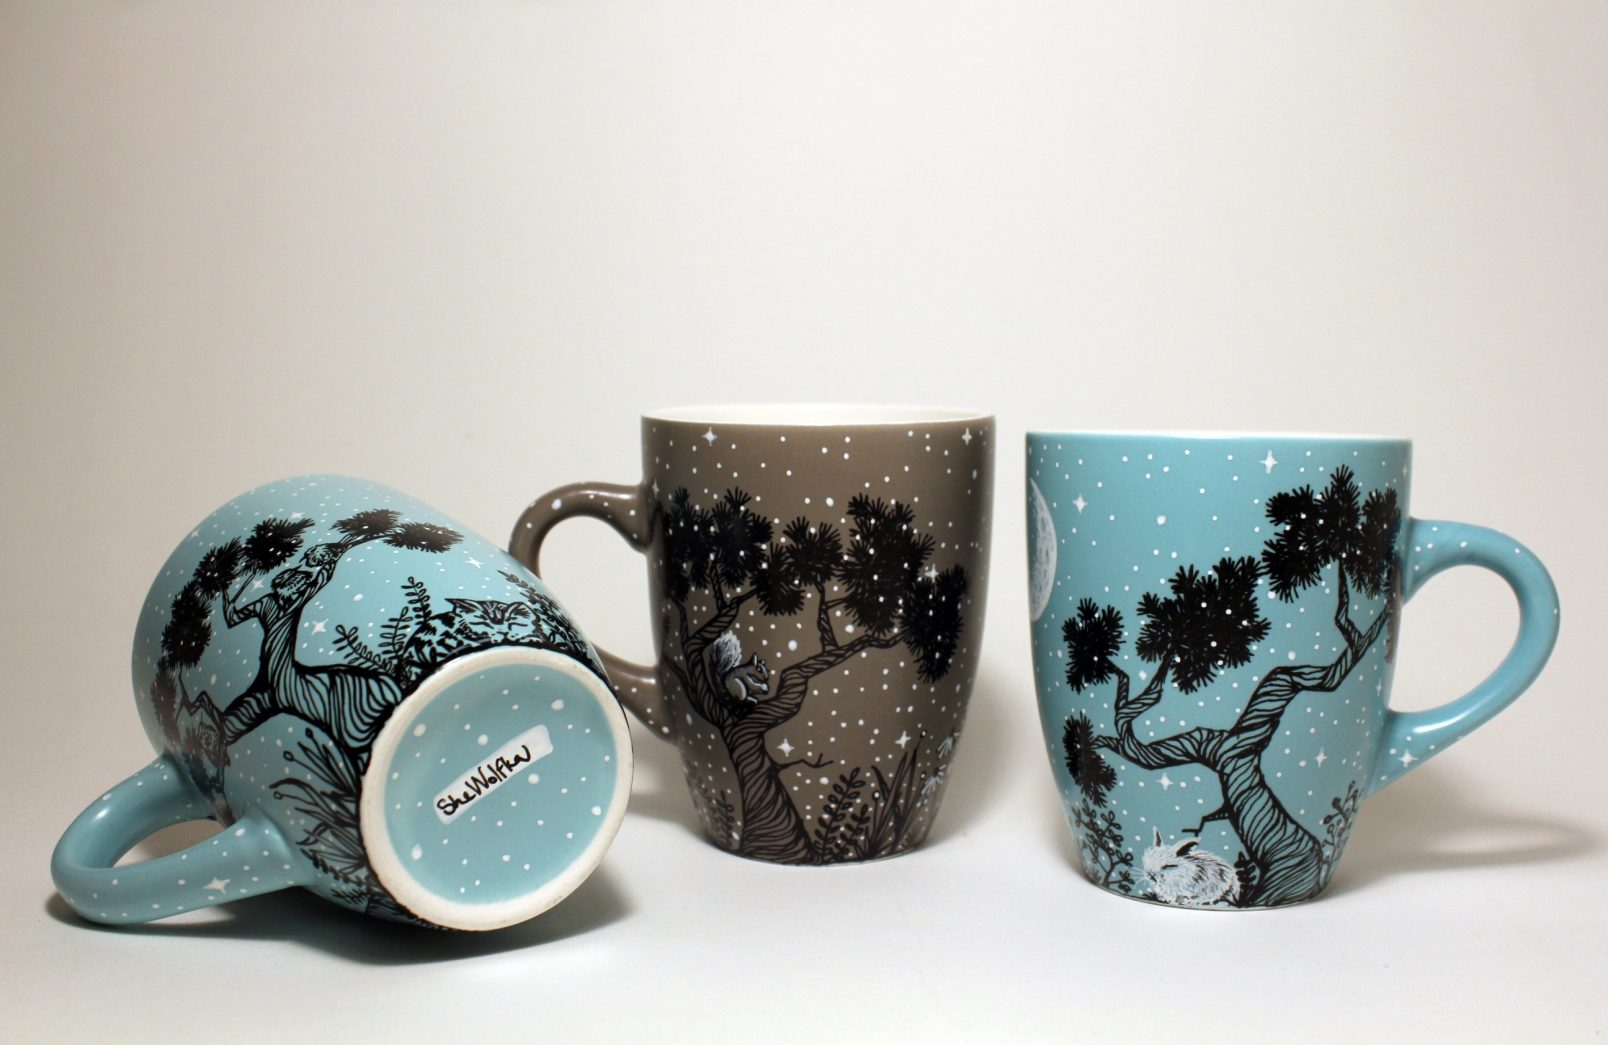 50 Hand Painted Mugs With Your Favorite Design